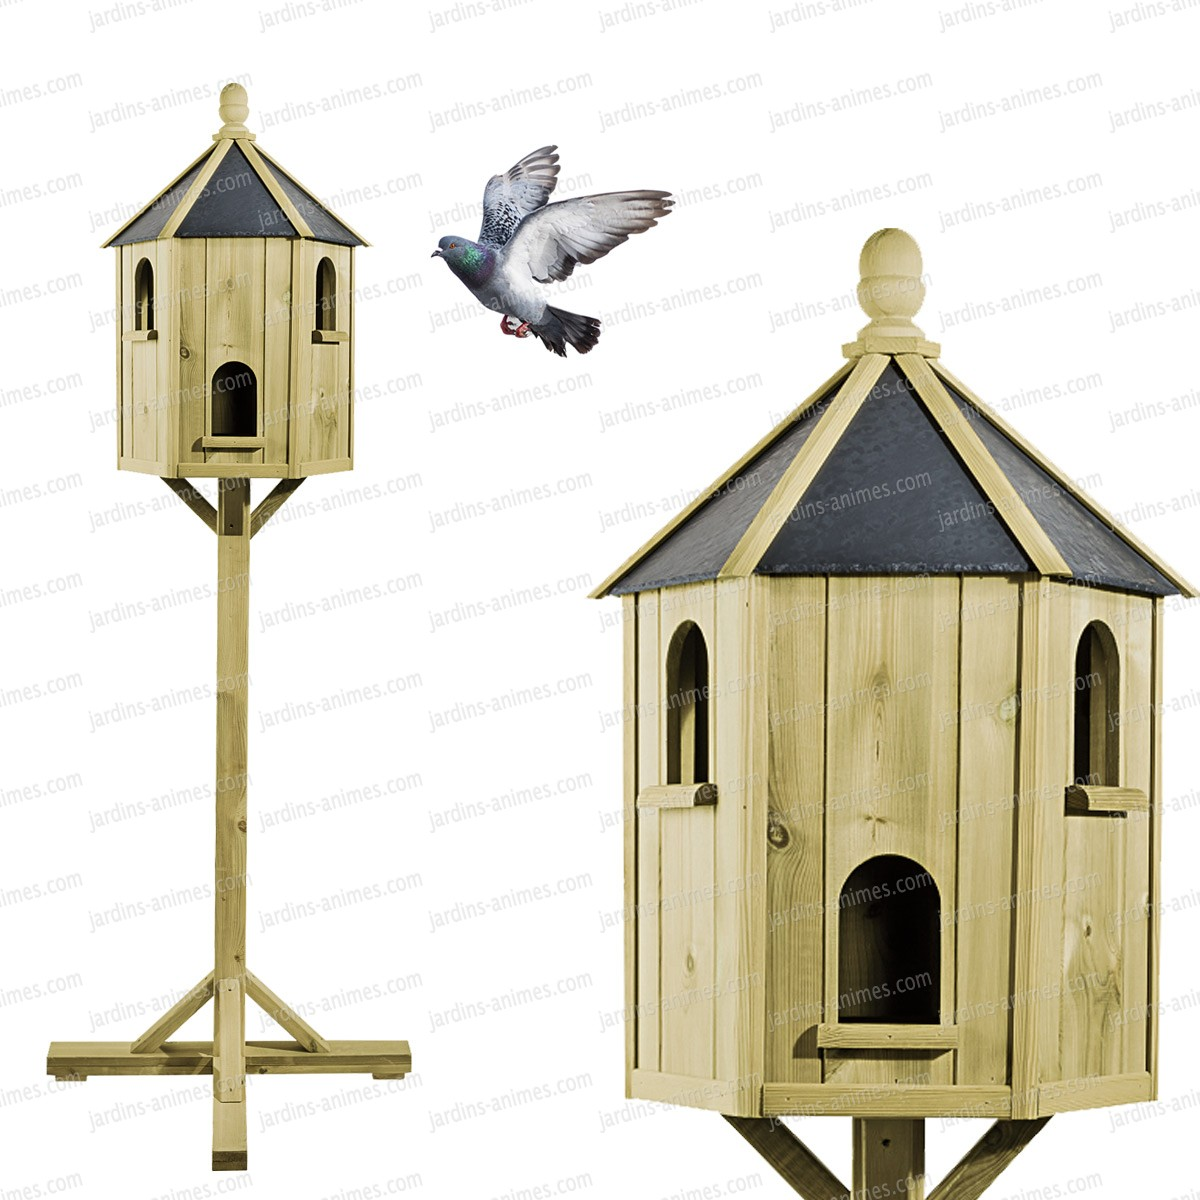 pigeonnier artisanal en bois sur pied h 180cm nichoirs. Black Bedroom Furniture Sets. Home Design Ideas